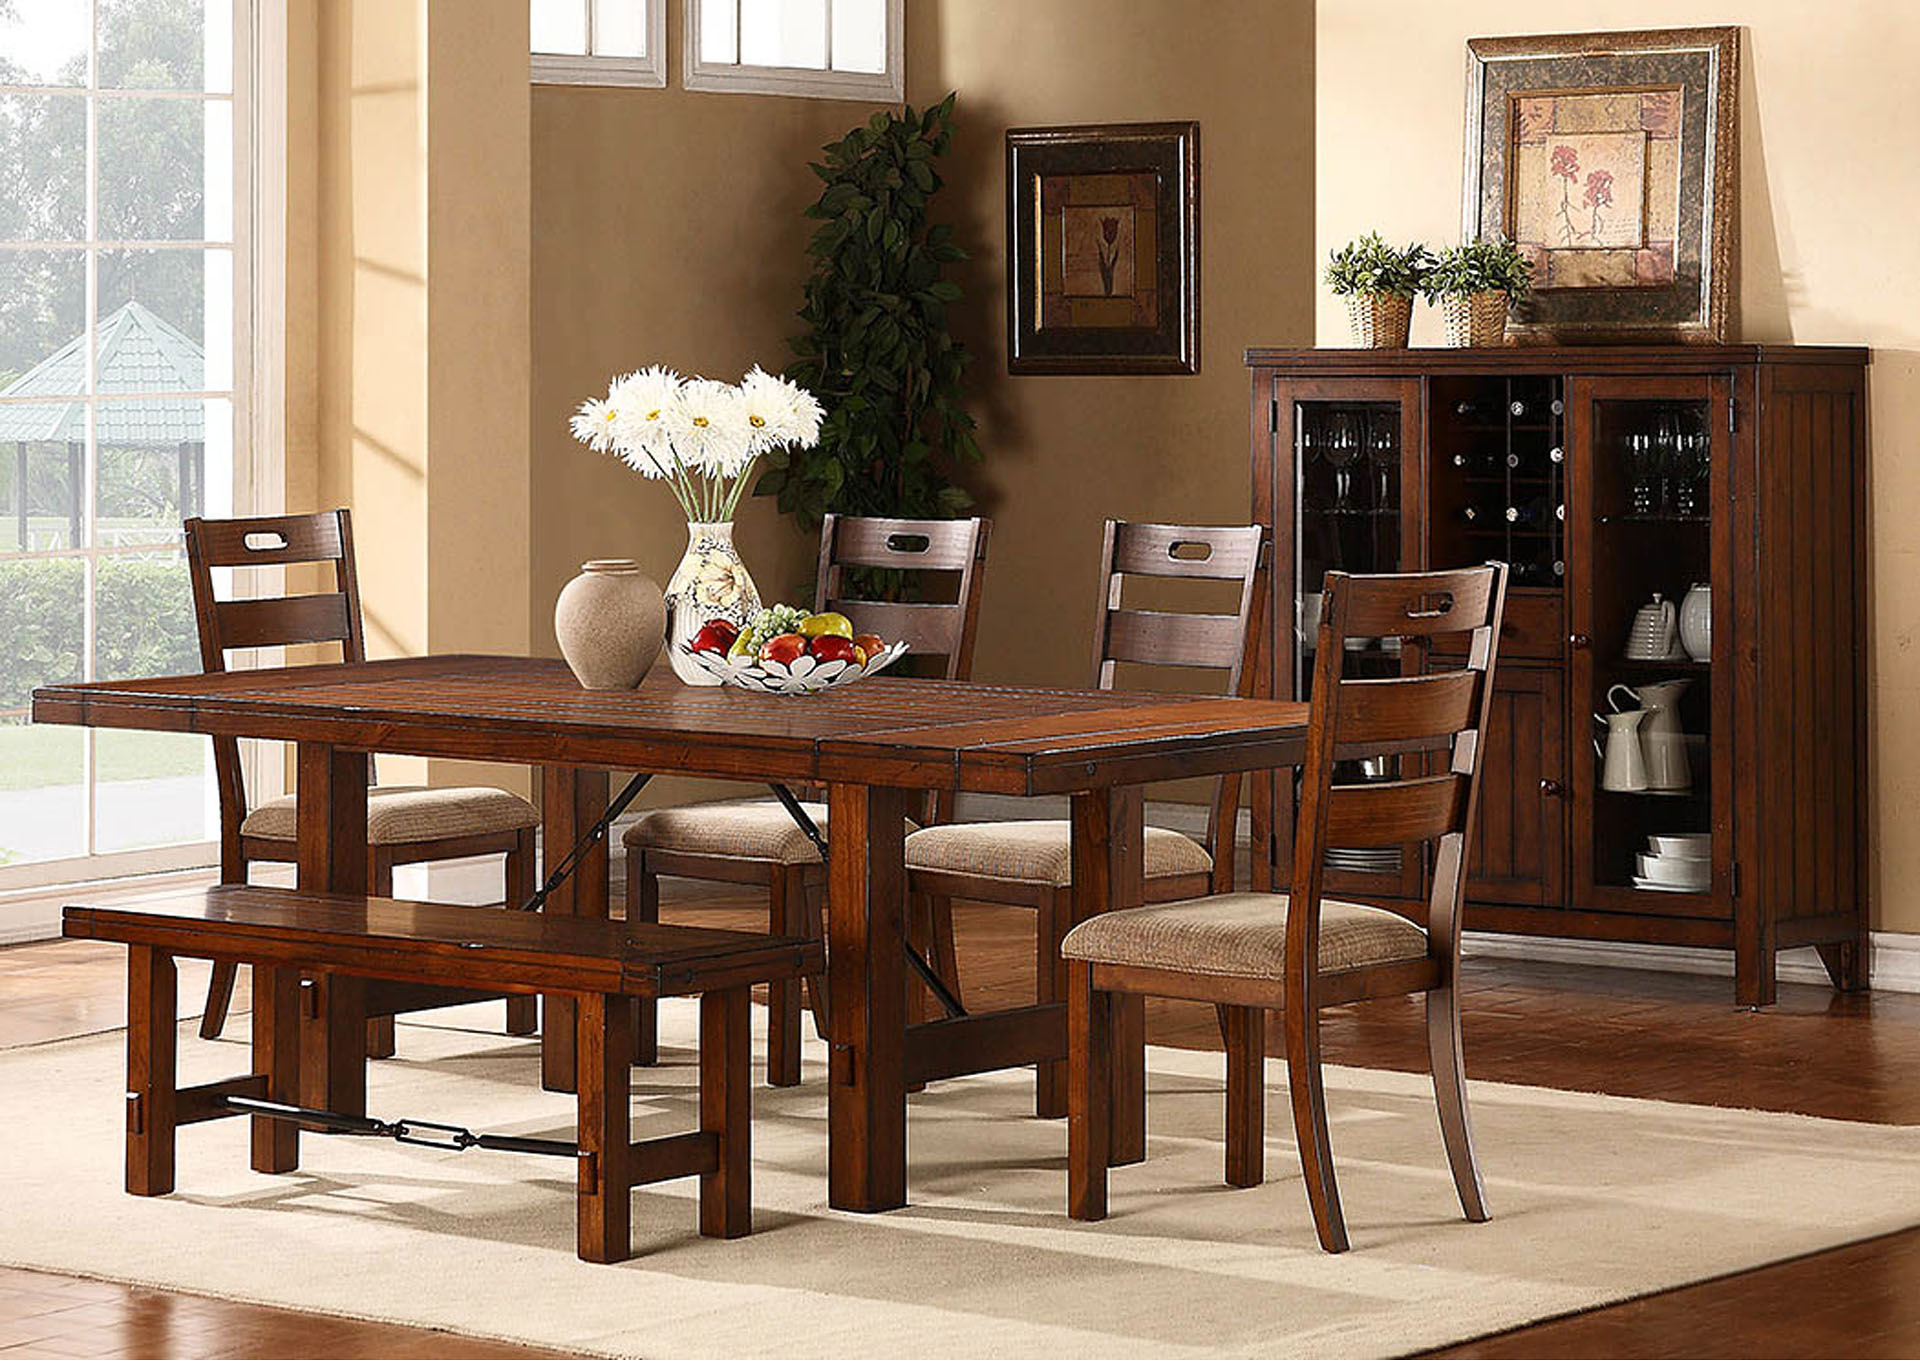 Oak Dining Room Chairs Set Of 4